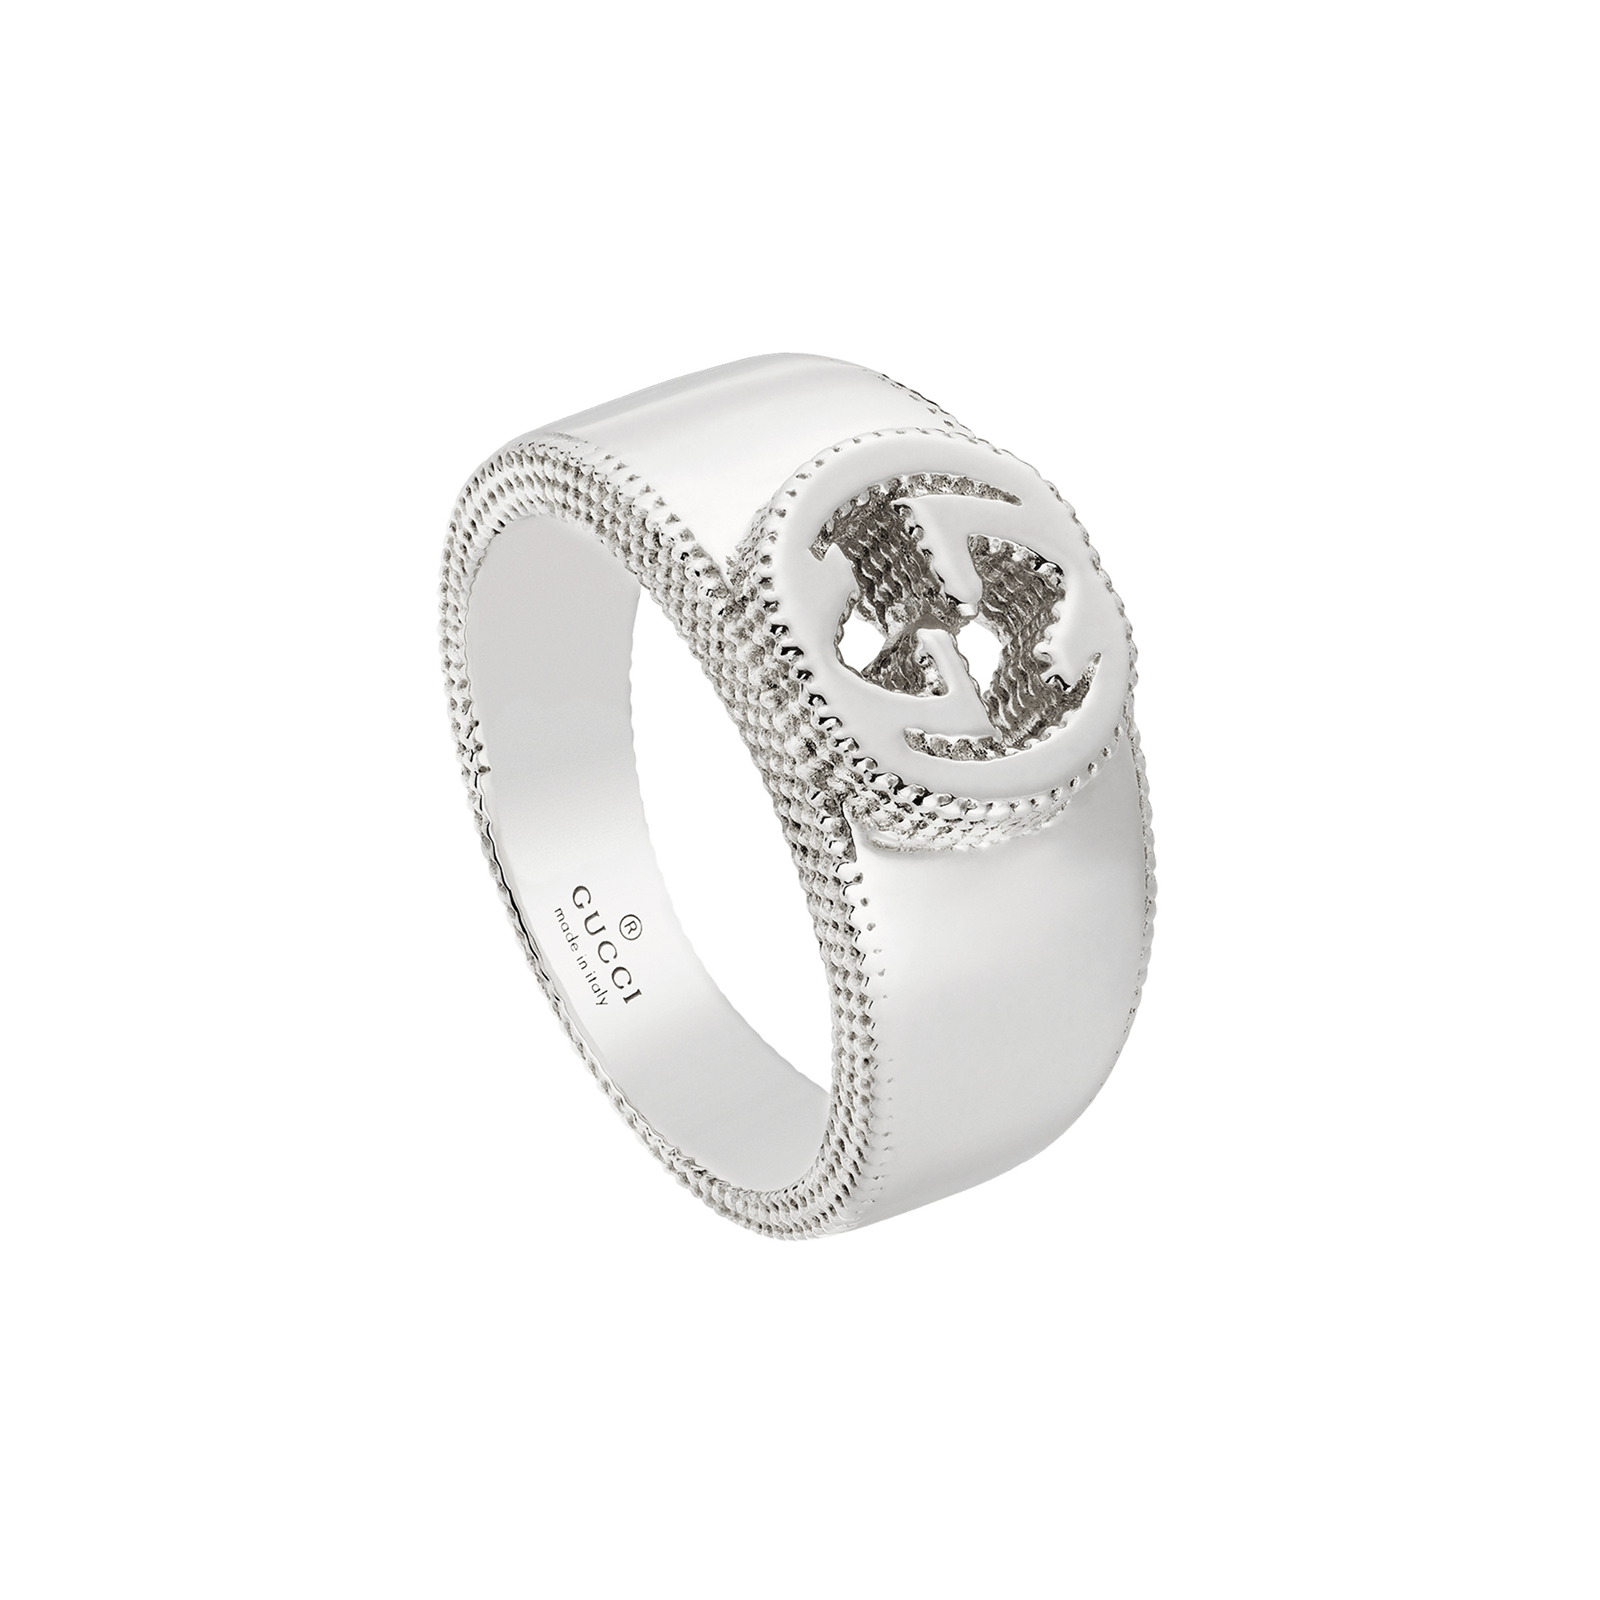 Gucci Interlocking G Ring in Silver - Ring Size O